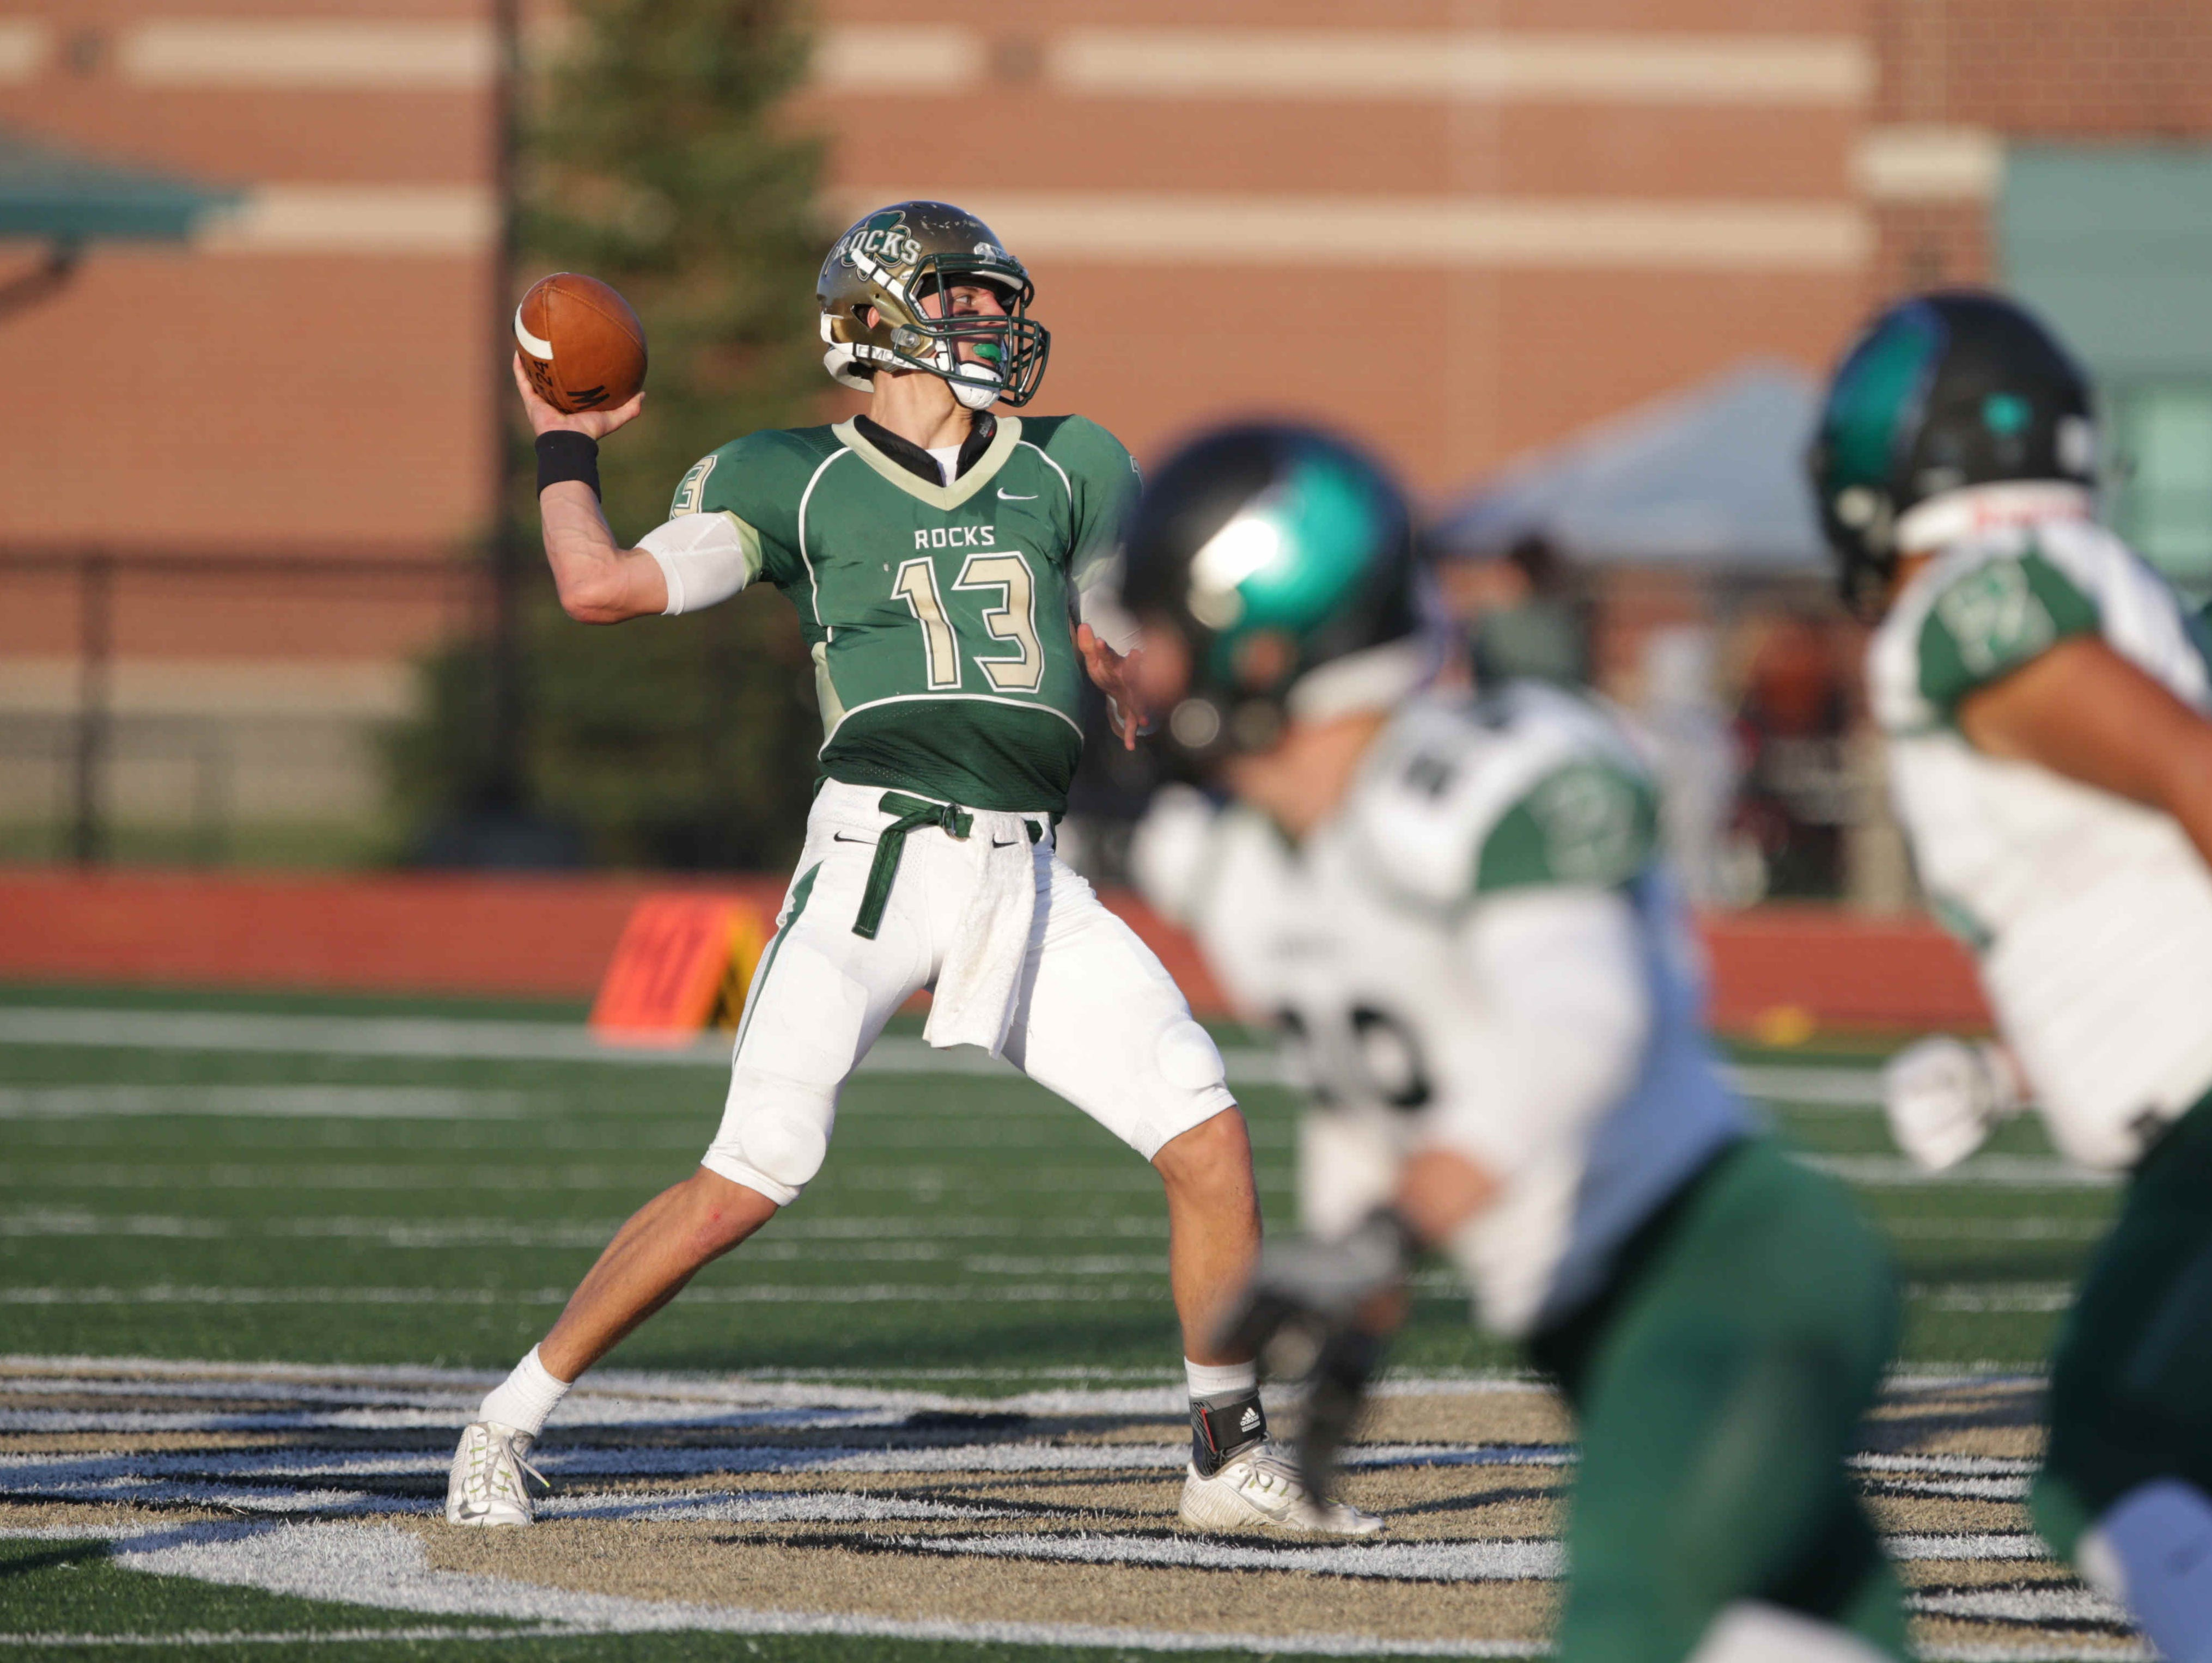 Westfield QB Andrew Sweet throws a pass against Zionsville, Sept. 2, 2016.